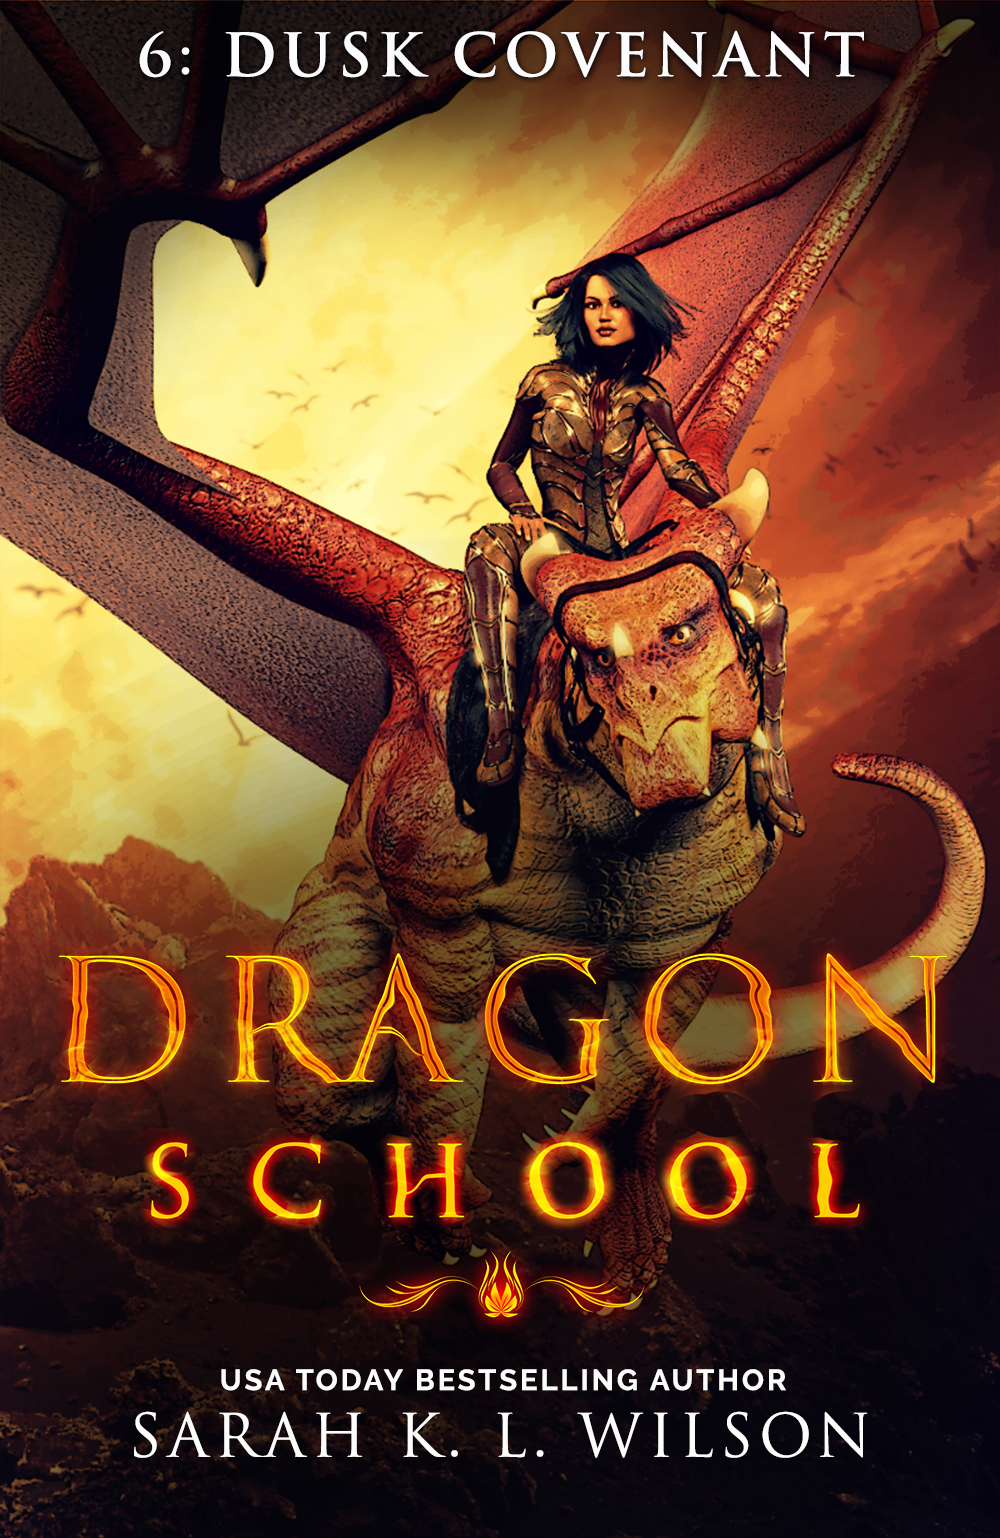 Dragon School: Dusk Covenant